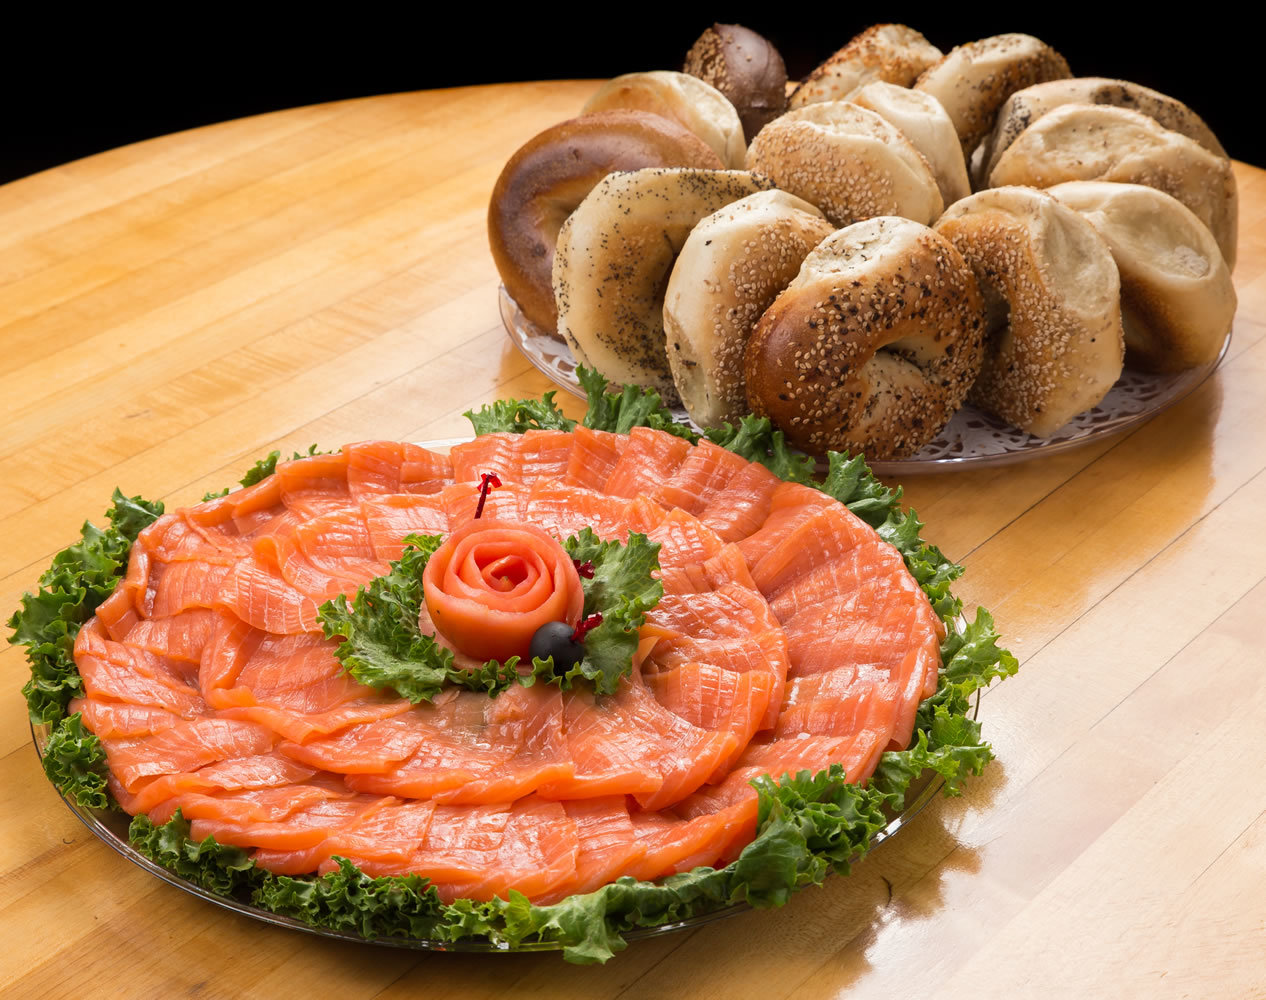 Nova Lox & Bagel Platters - Catering For Any Occaision!